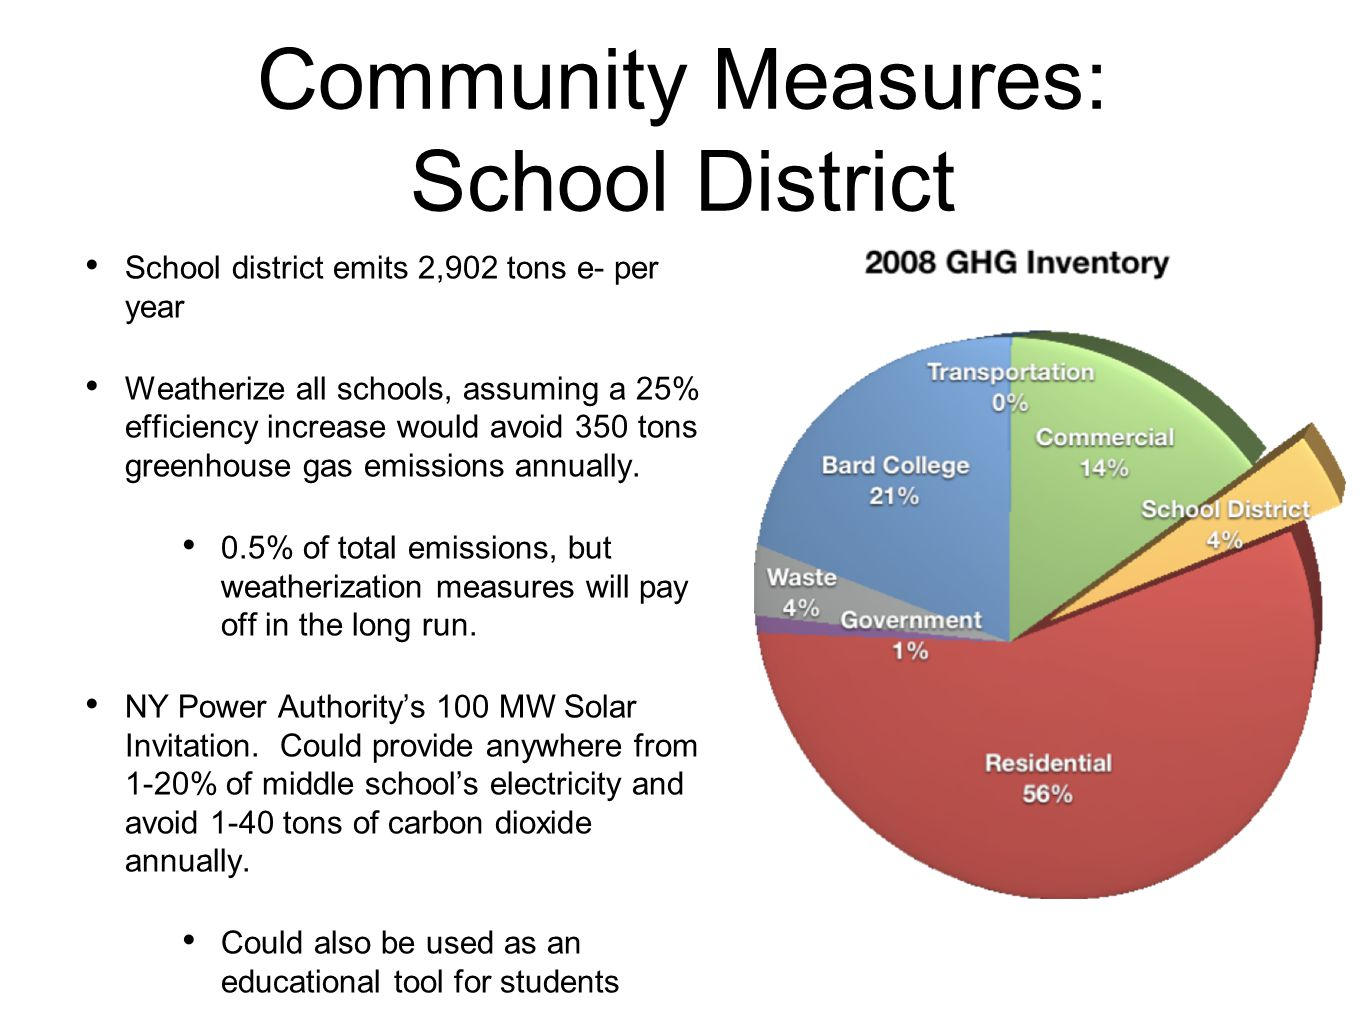 Community Measures: School District School district emits 2,902 tons e- per year Weatherize all schools, assuming a 25% efficiency increase would avoid 350 tons greenhouse gas emissions annually.